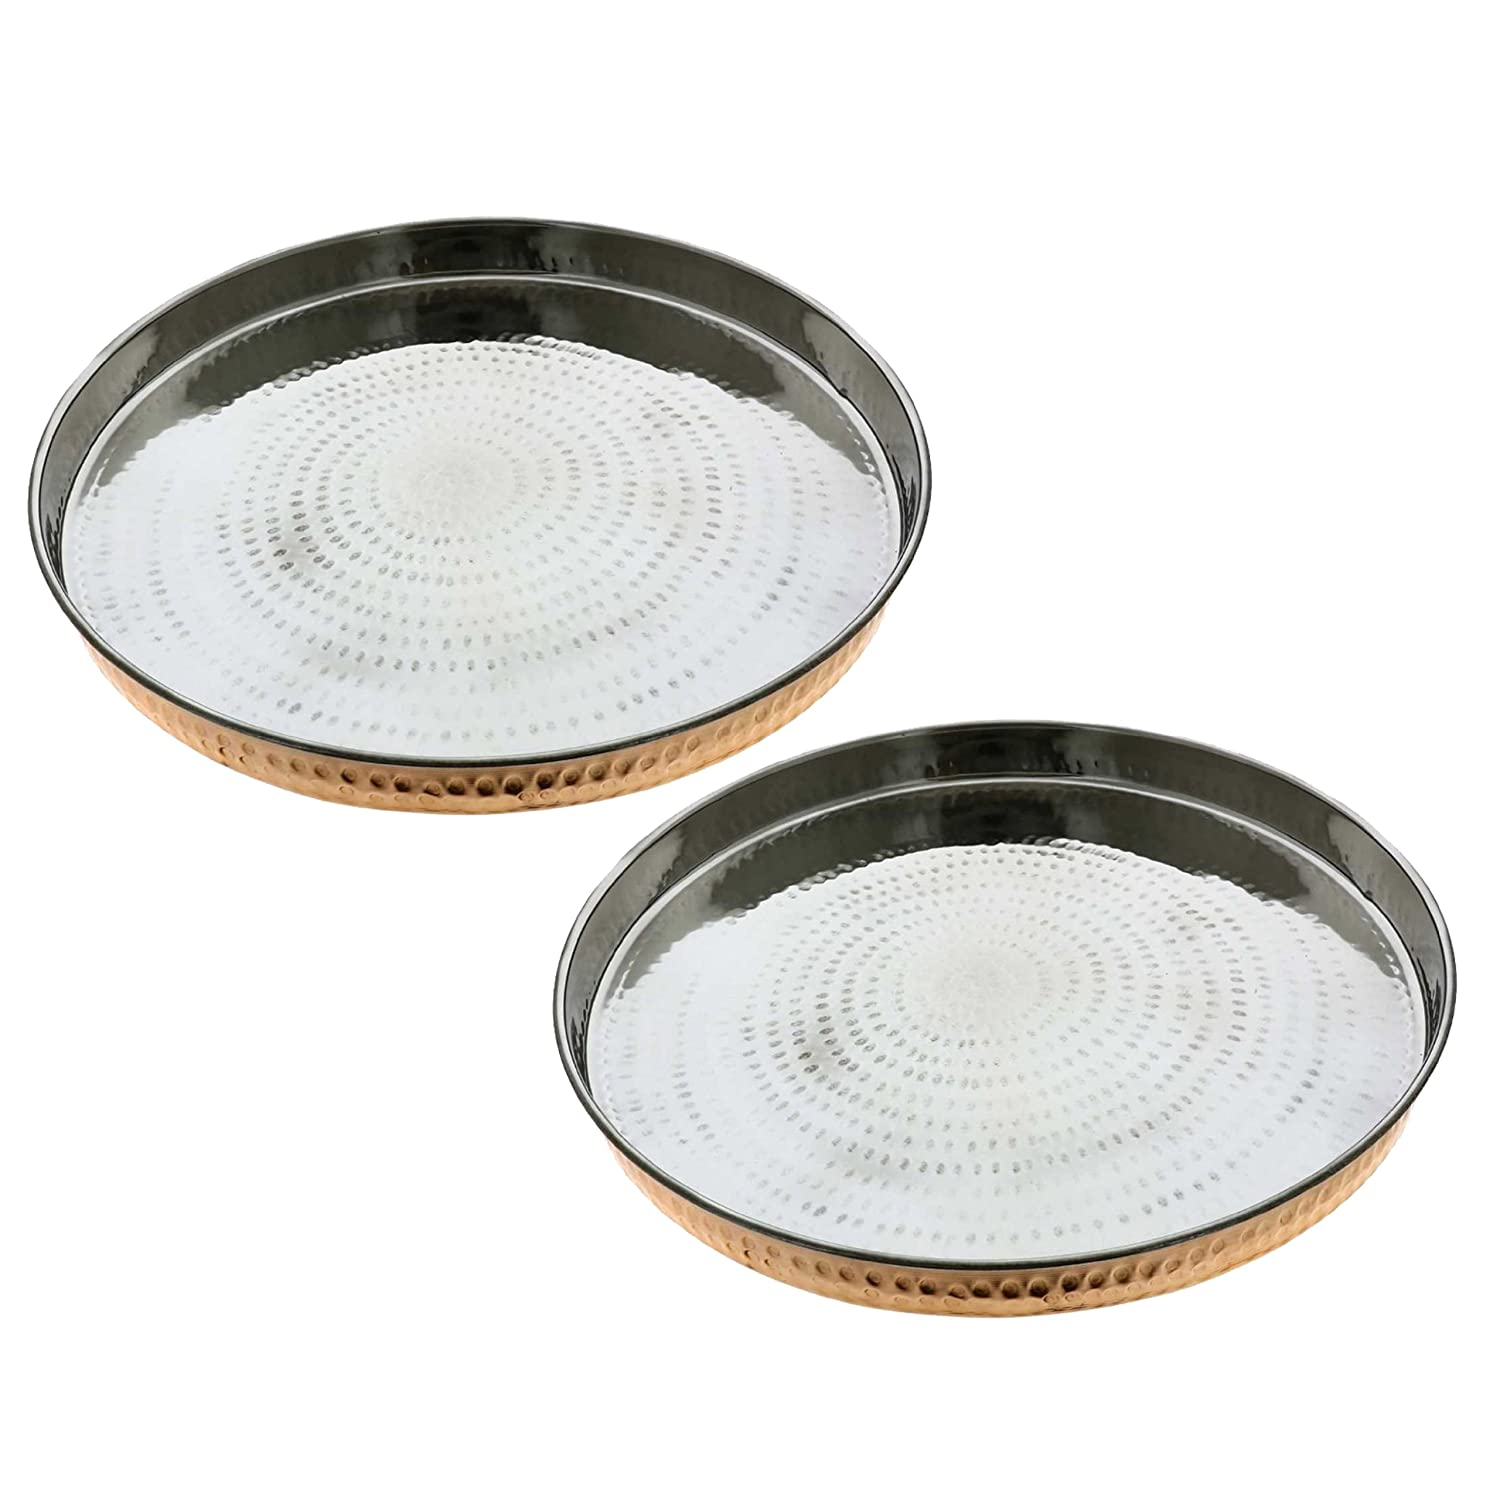 SKAVIJ 12-inch Round Charger Plates, Set of 2, Dinnerware Service Plate Dinner Chargers, Heavy Copper and Stainless Steel M-TT1